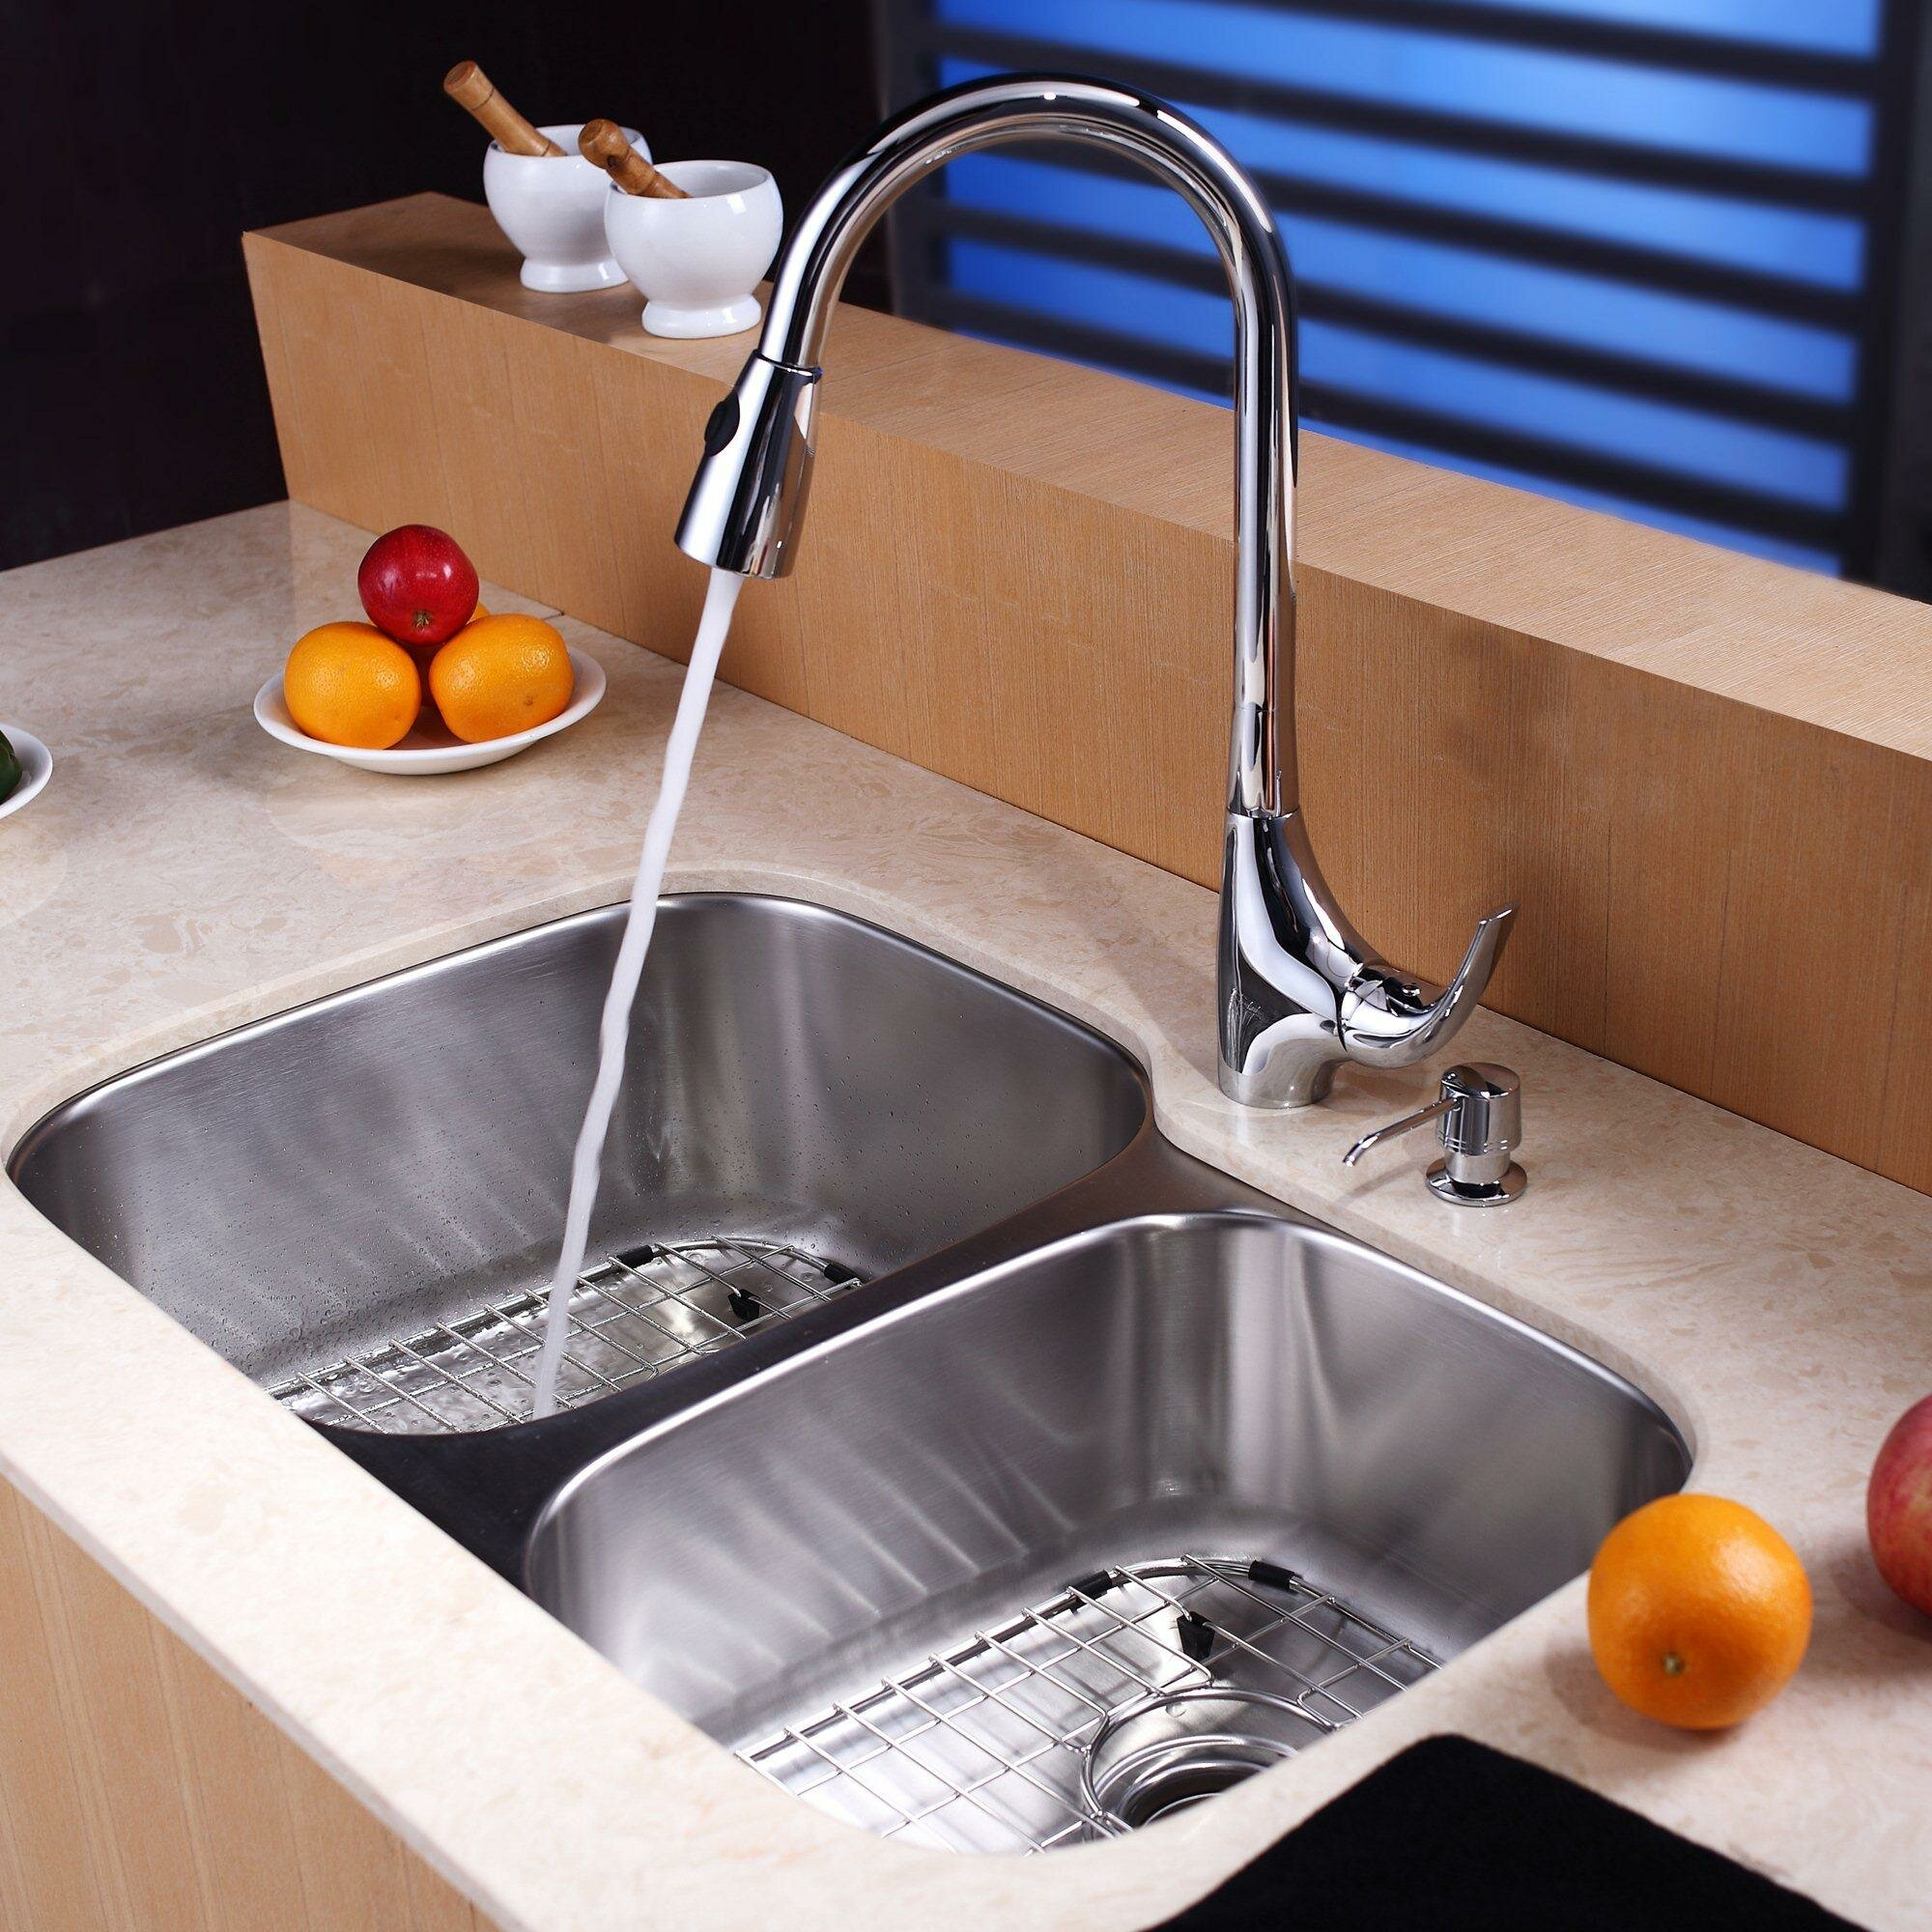 32 x 2075 double basin undermount kitchen sink set with faucet and soap dispenser - Kitchen Sink And Faucet Sets